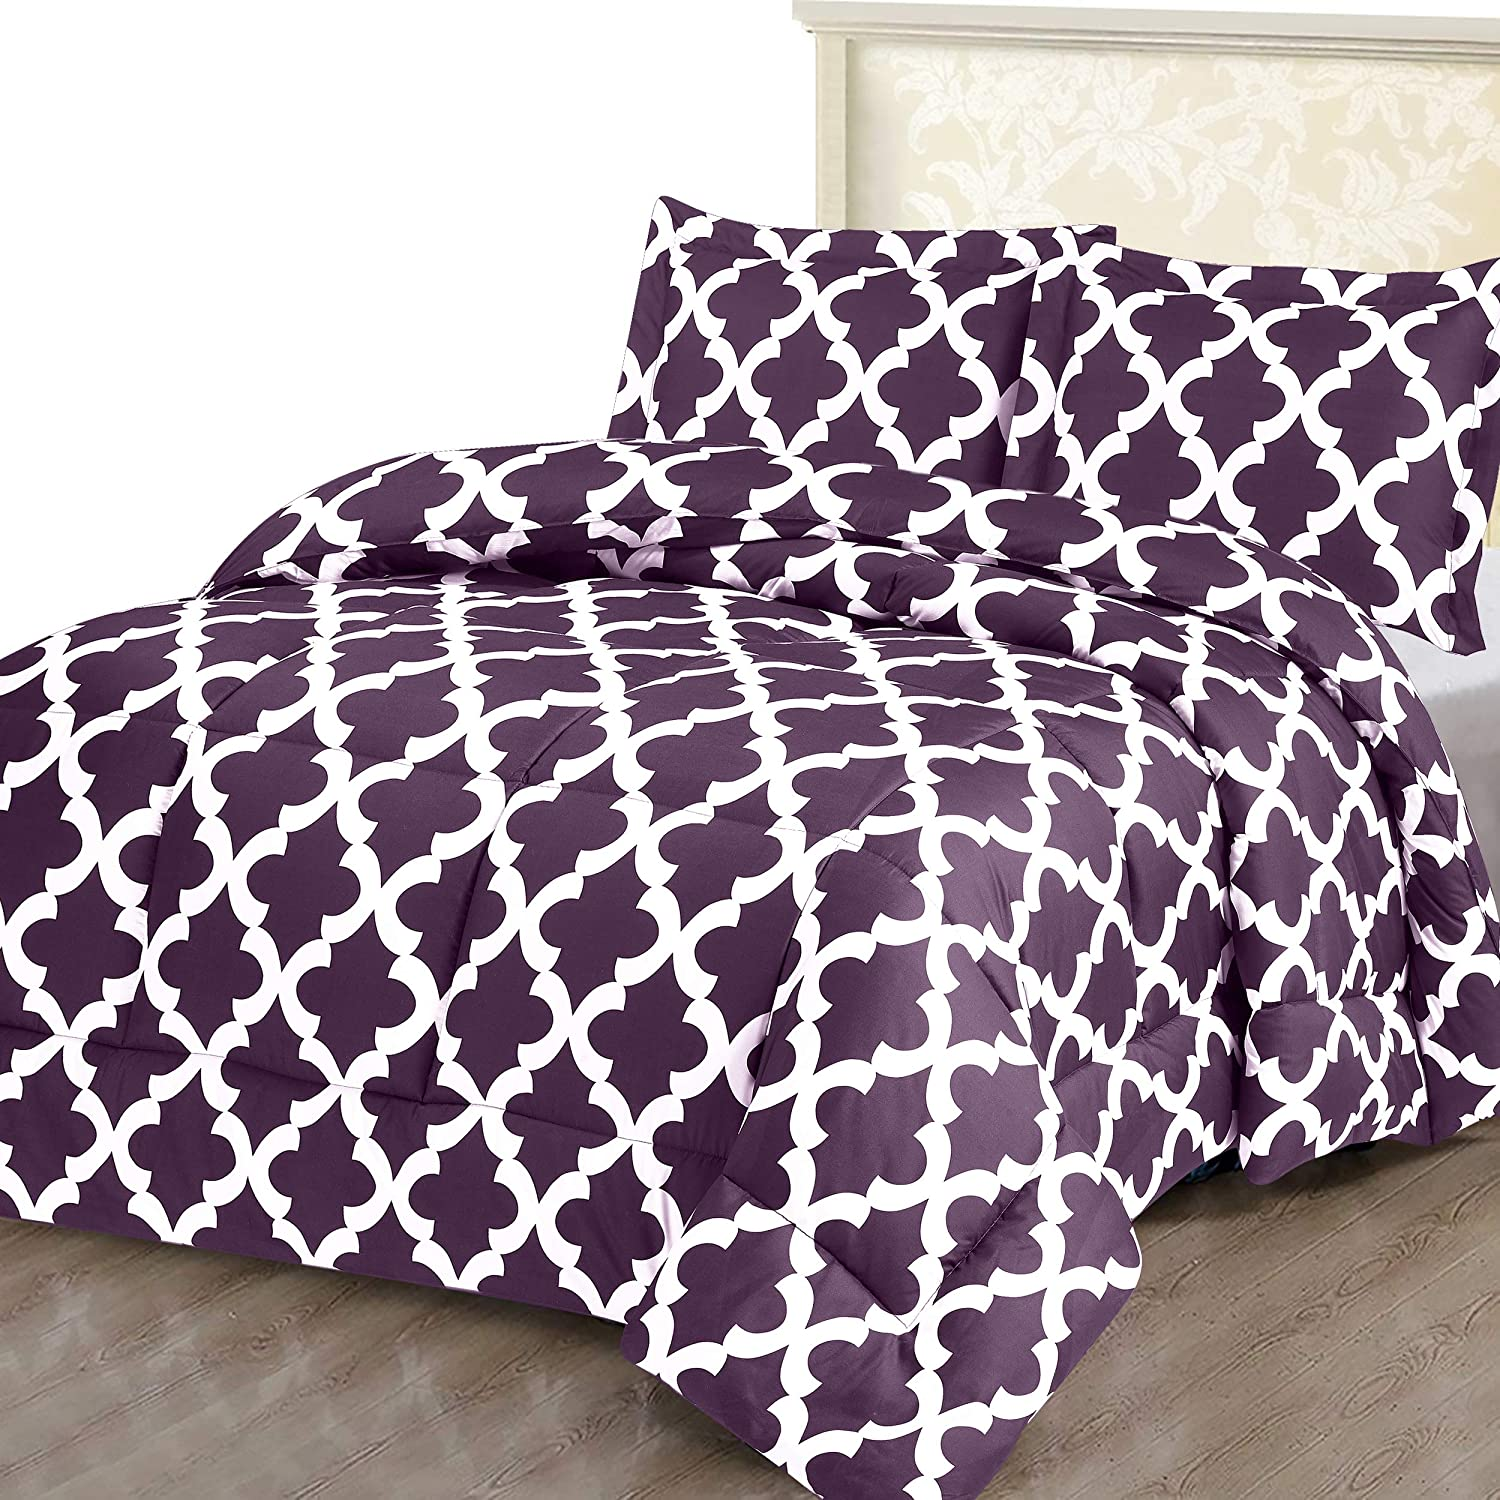 Utopia Bedding Printed Comforter Set (Queen, Plum) with 2 Pillow Shams - Luxurious Brushed Microfiber - Down Alternative Comforter - Soft and Comfortable - Machine Washable